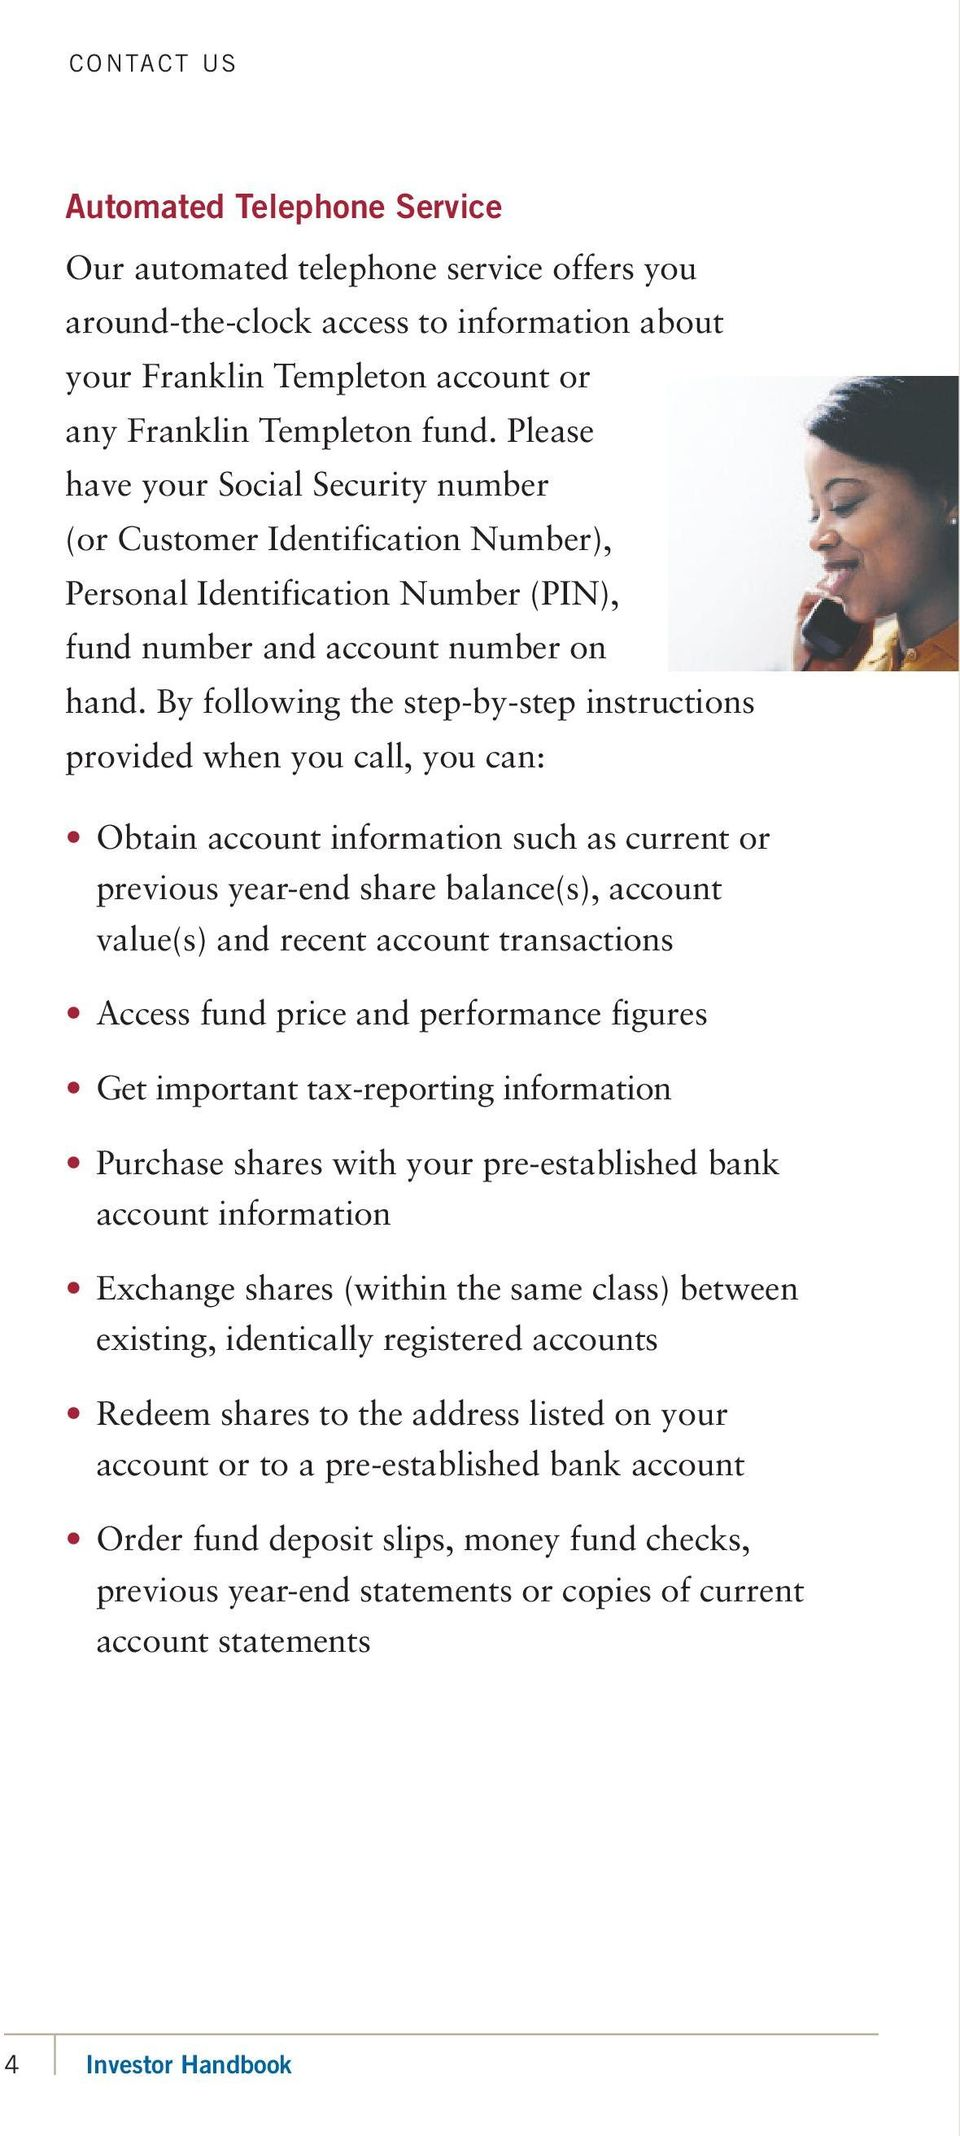 By following the step- by-step instructions provided when you call, you can: Obtain account information such as current or previous year-end share balance(s), account value(s) and recent account